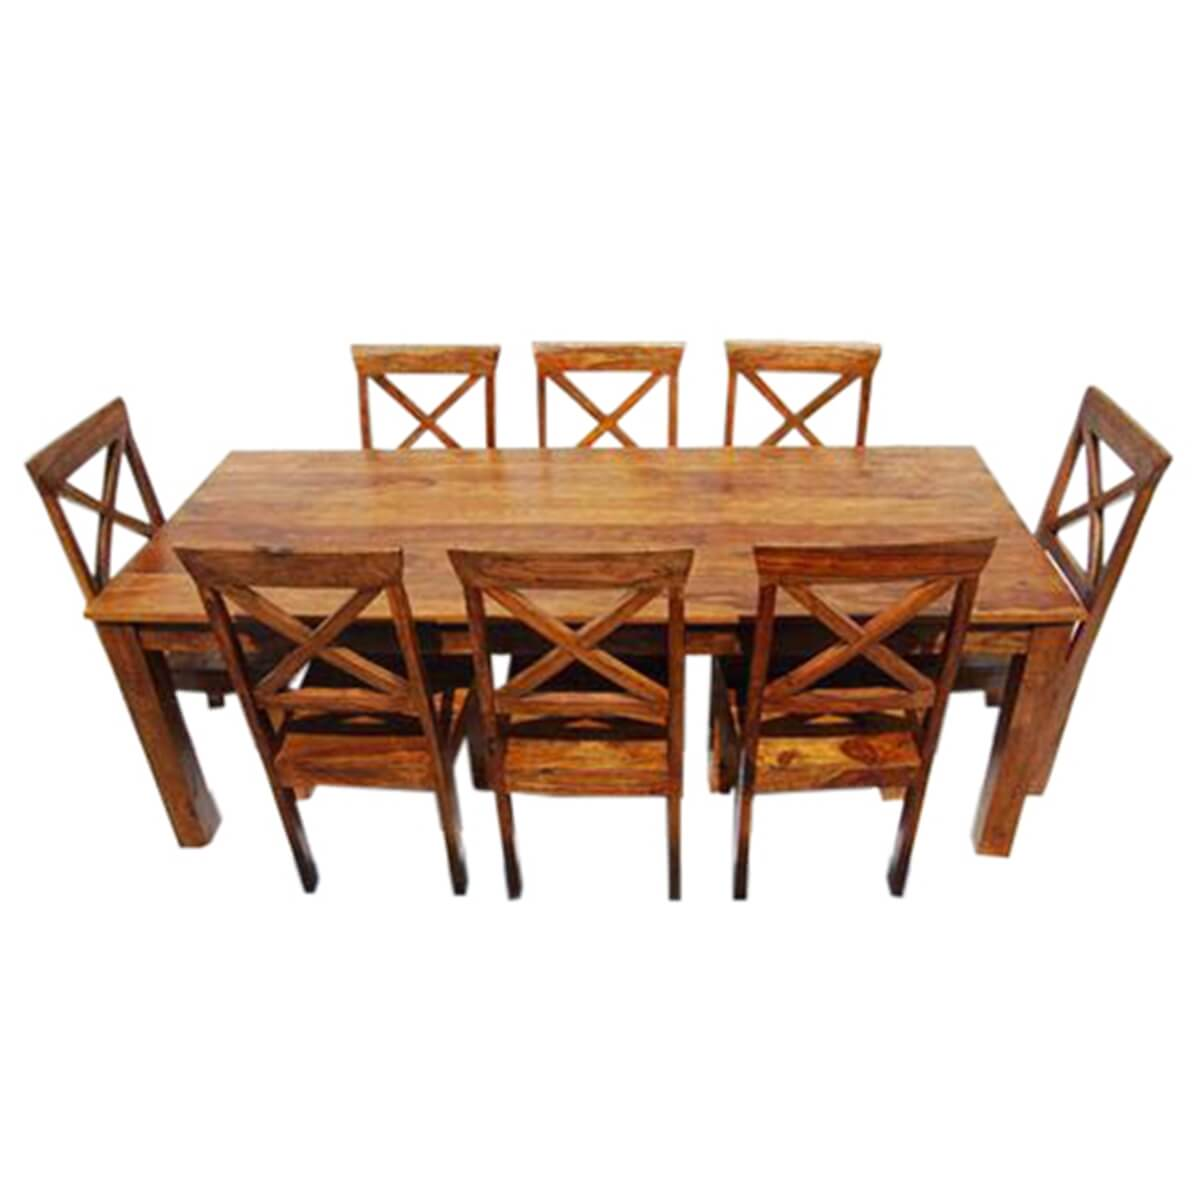 Large Rustic Oklahoma Solid Wood Dining Table amp Chair Set : 13534 from www.sierralivingconcepts.com size 1200 x 1200 jpeg 259kB